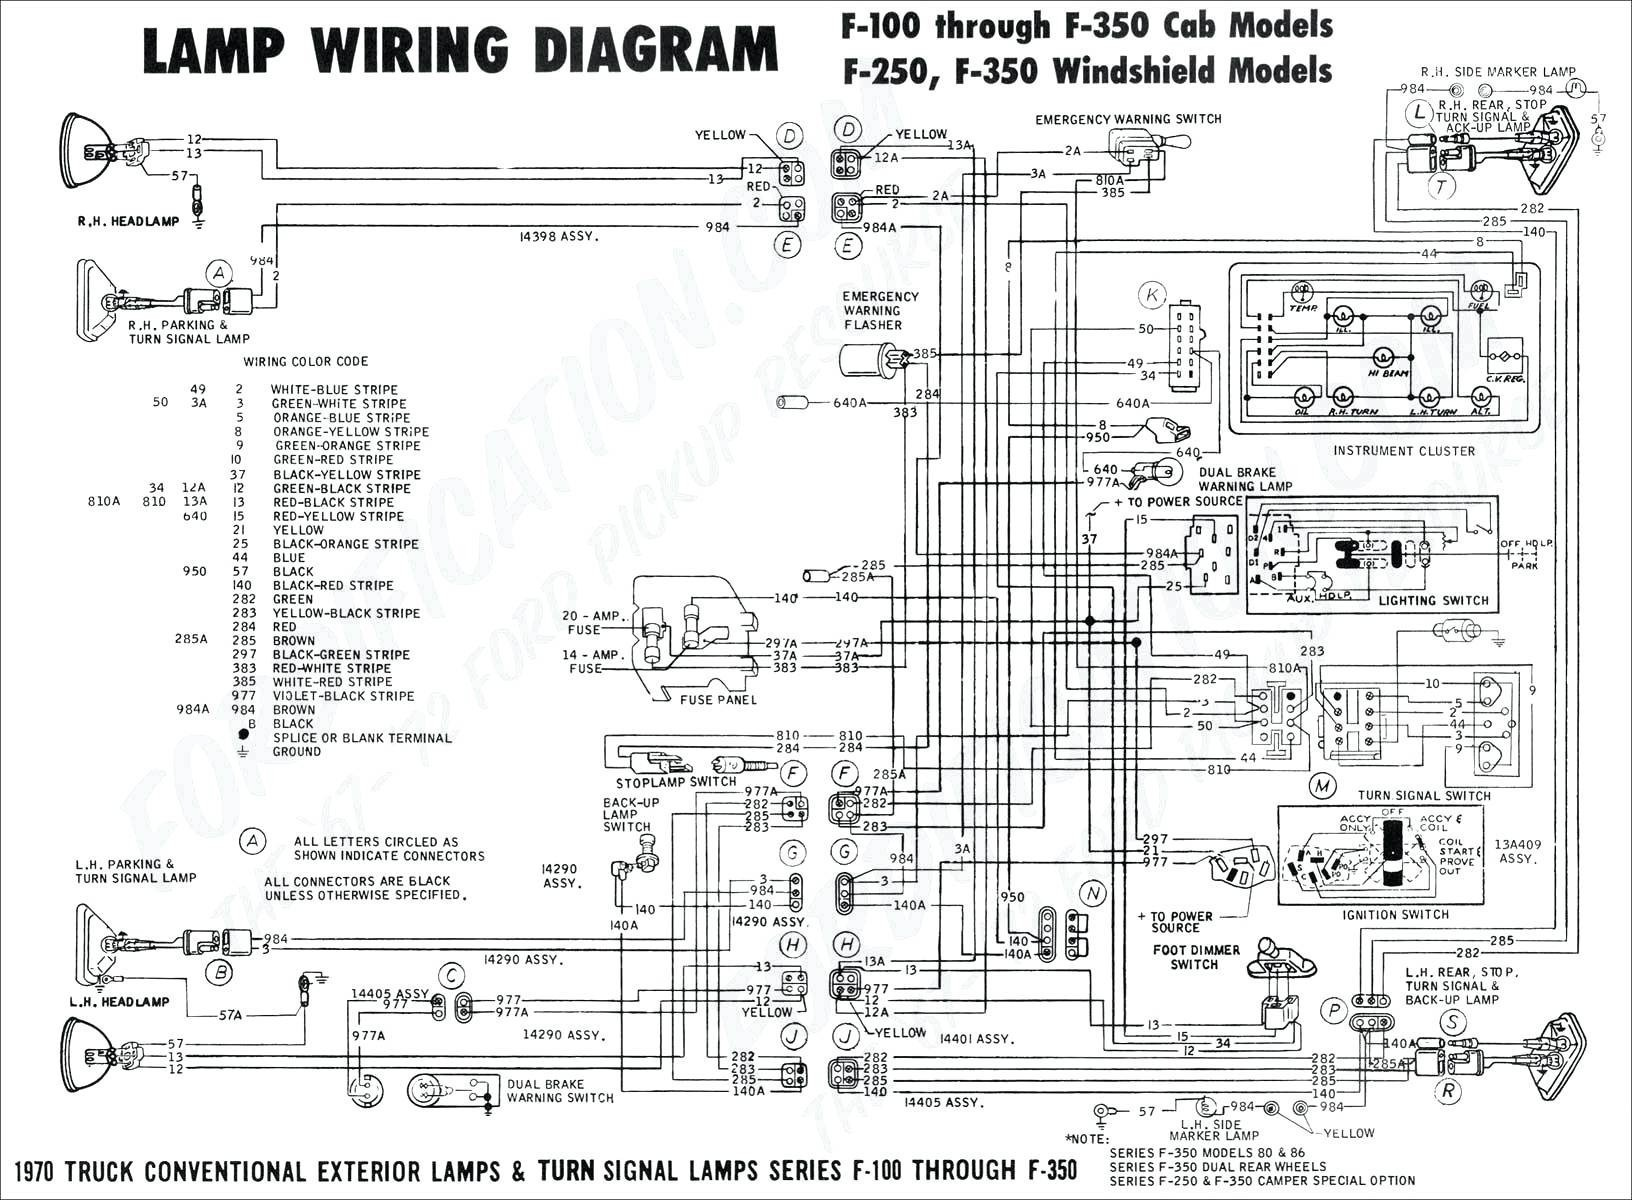 2002 Nissan Xterra Engine Diagram 2010 Xterra Wiring Diagram Wiring Diagram Datasource Of 2002 Nissan Xterra Engine Diagram 2006 Nissan Altima Relay Diagram Including 2003 Nissan Xterra Air